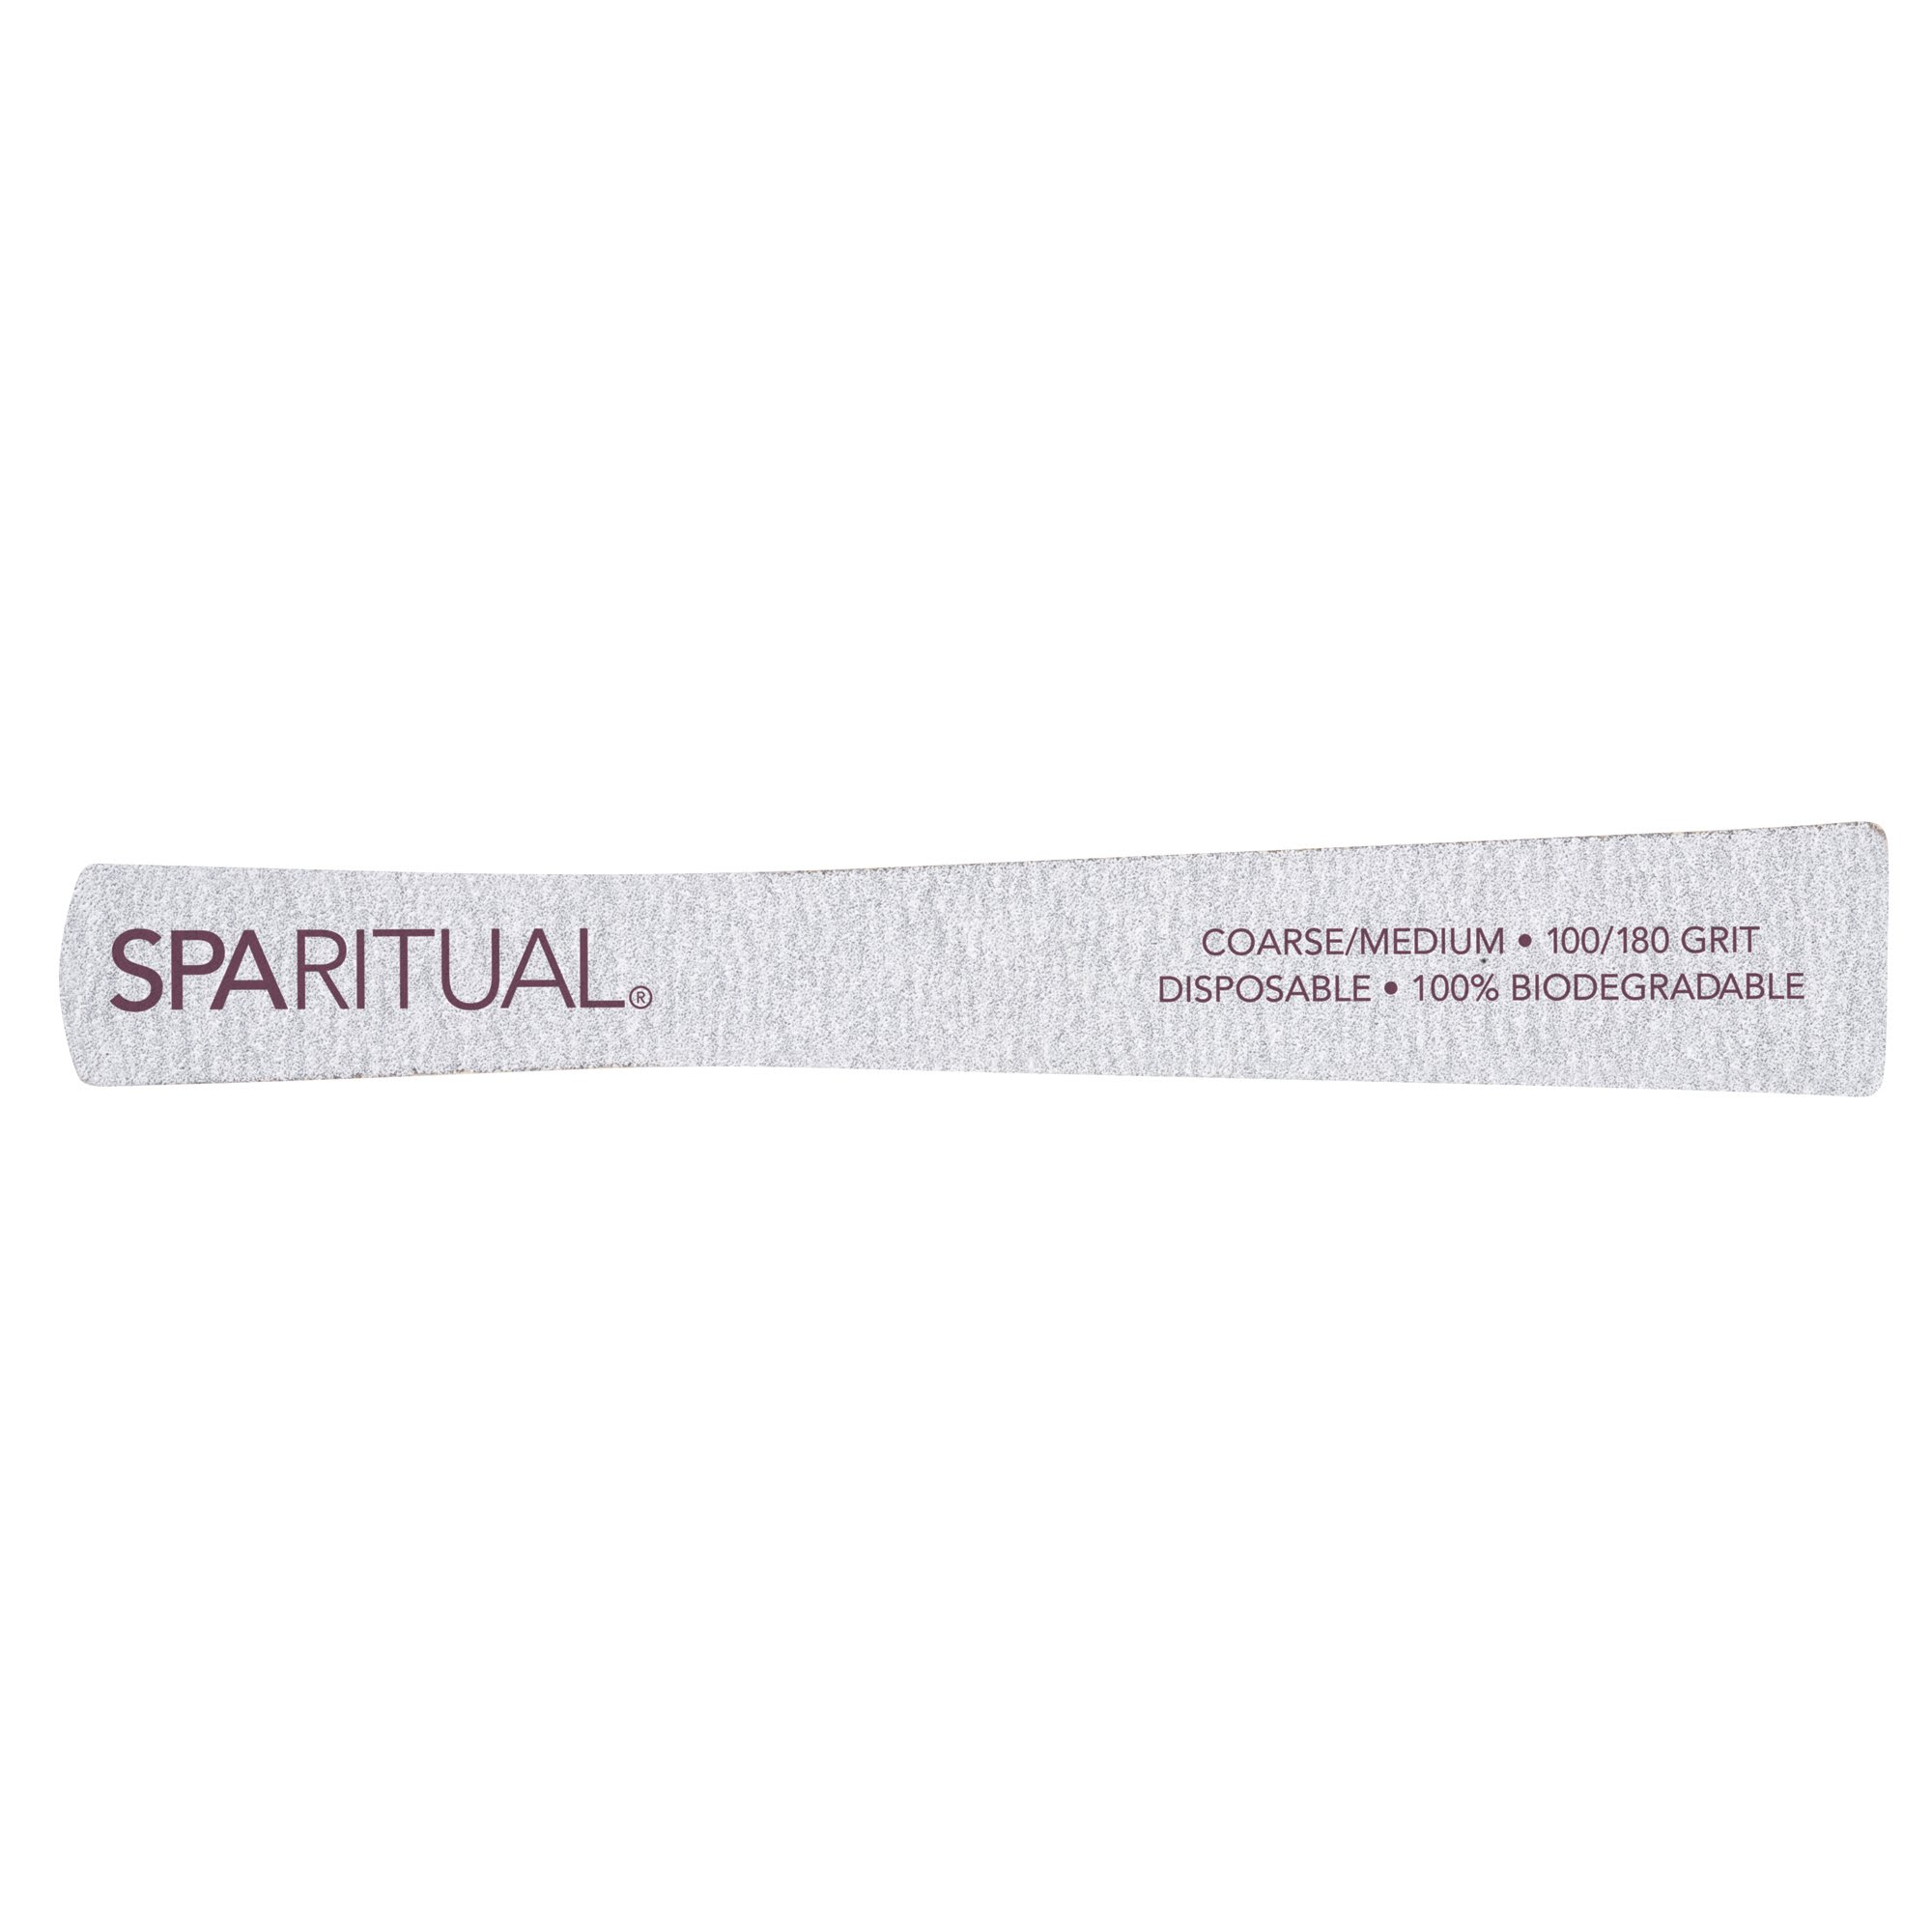 SpaRitual Zebra Board Nail File / 5pc – Spa Vargas